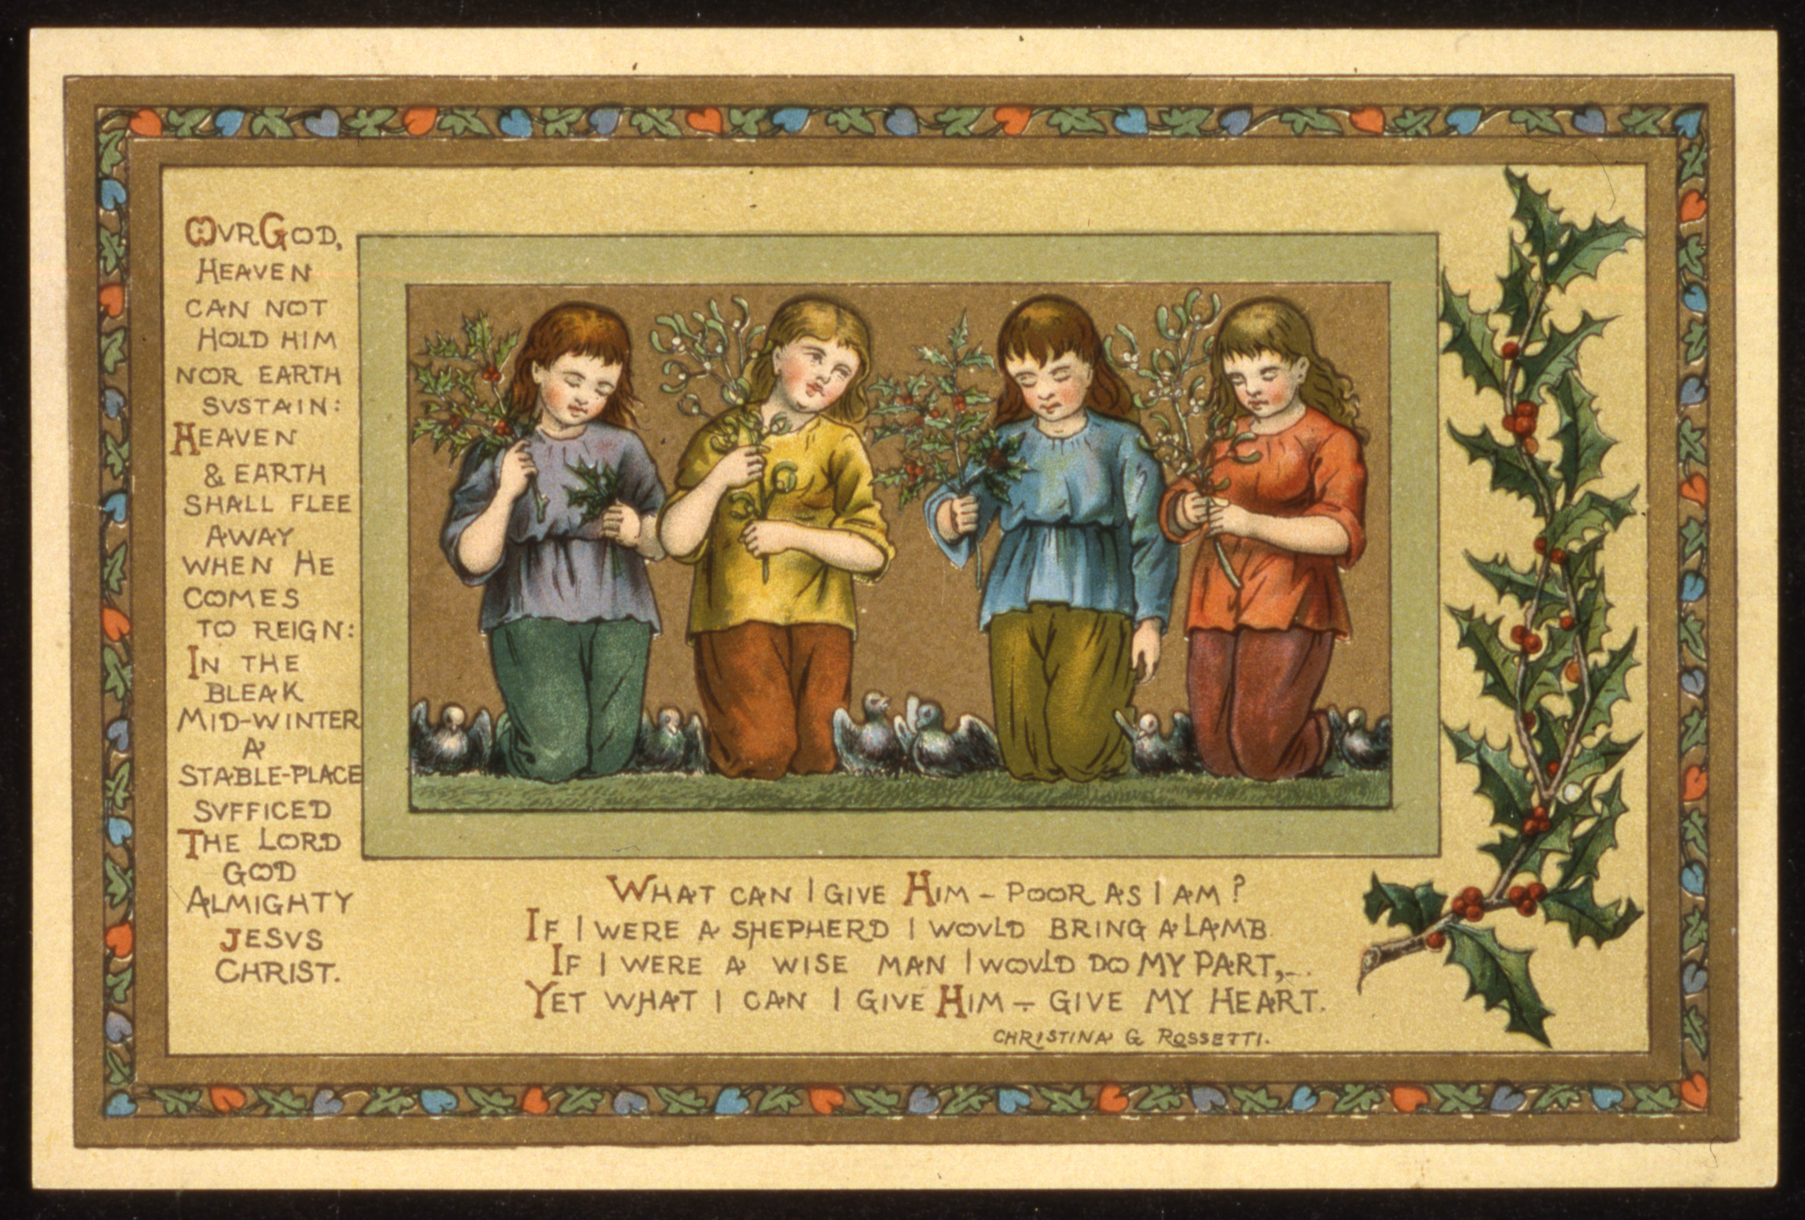 Four children hold sprigs of greenery on the cover of this card.